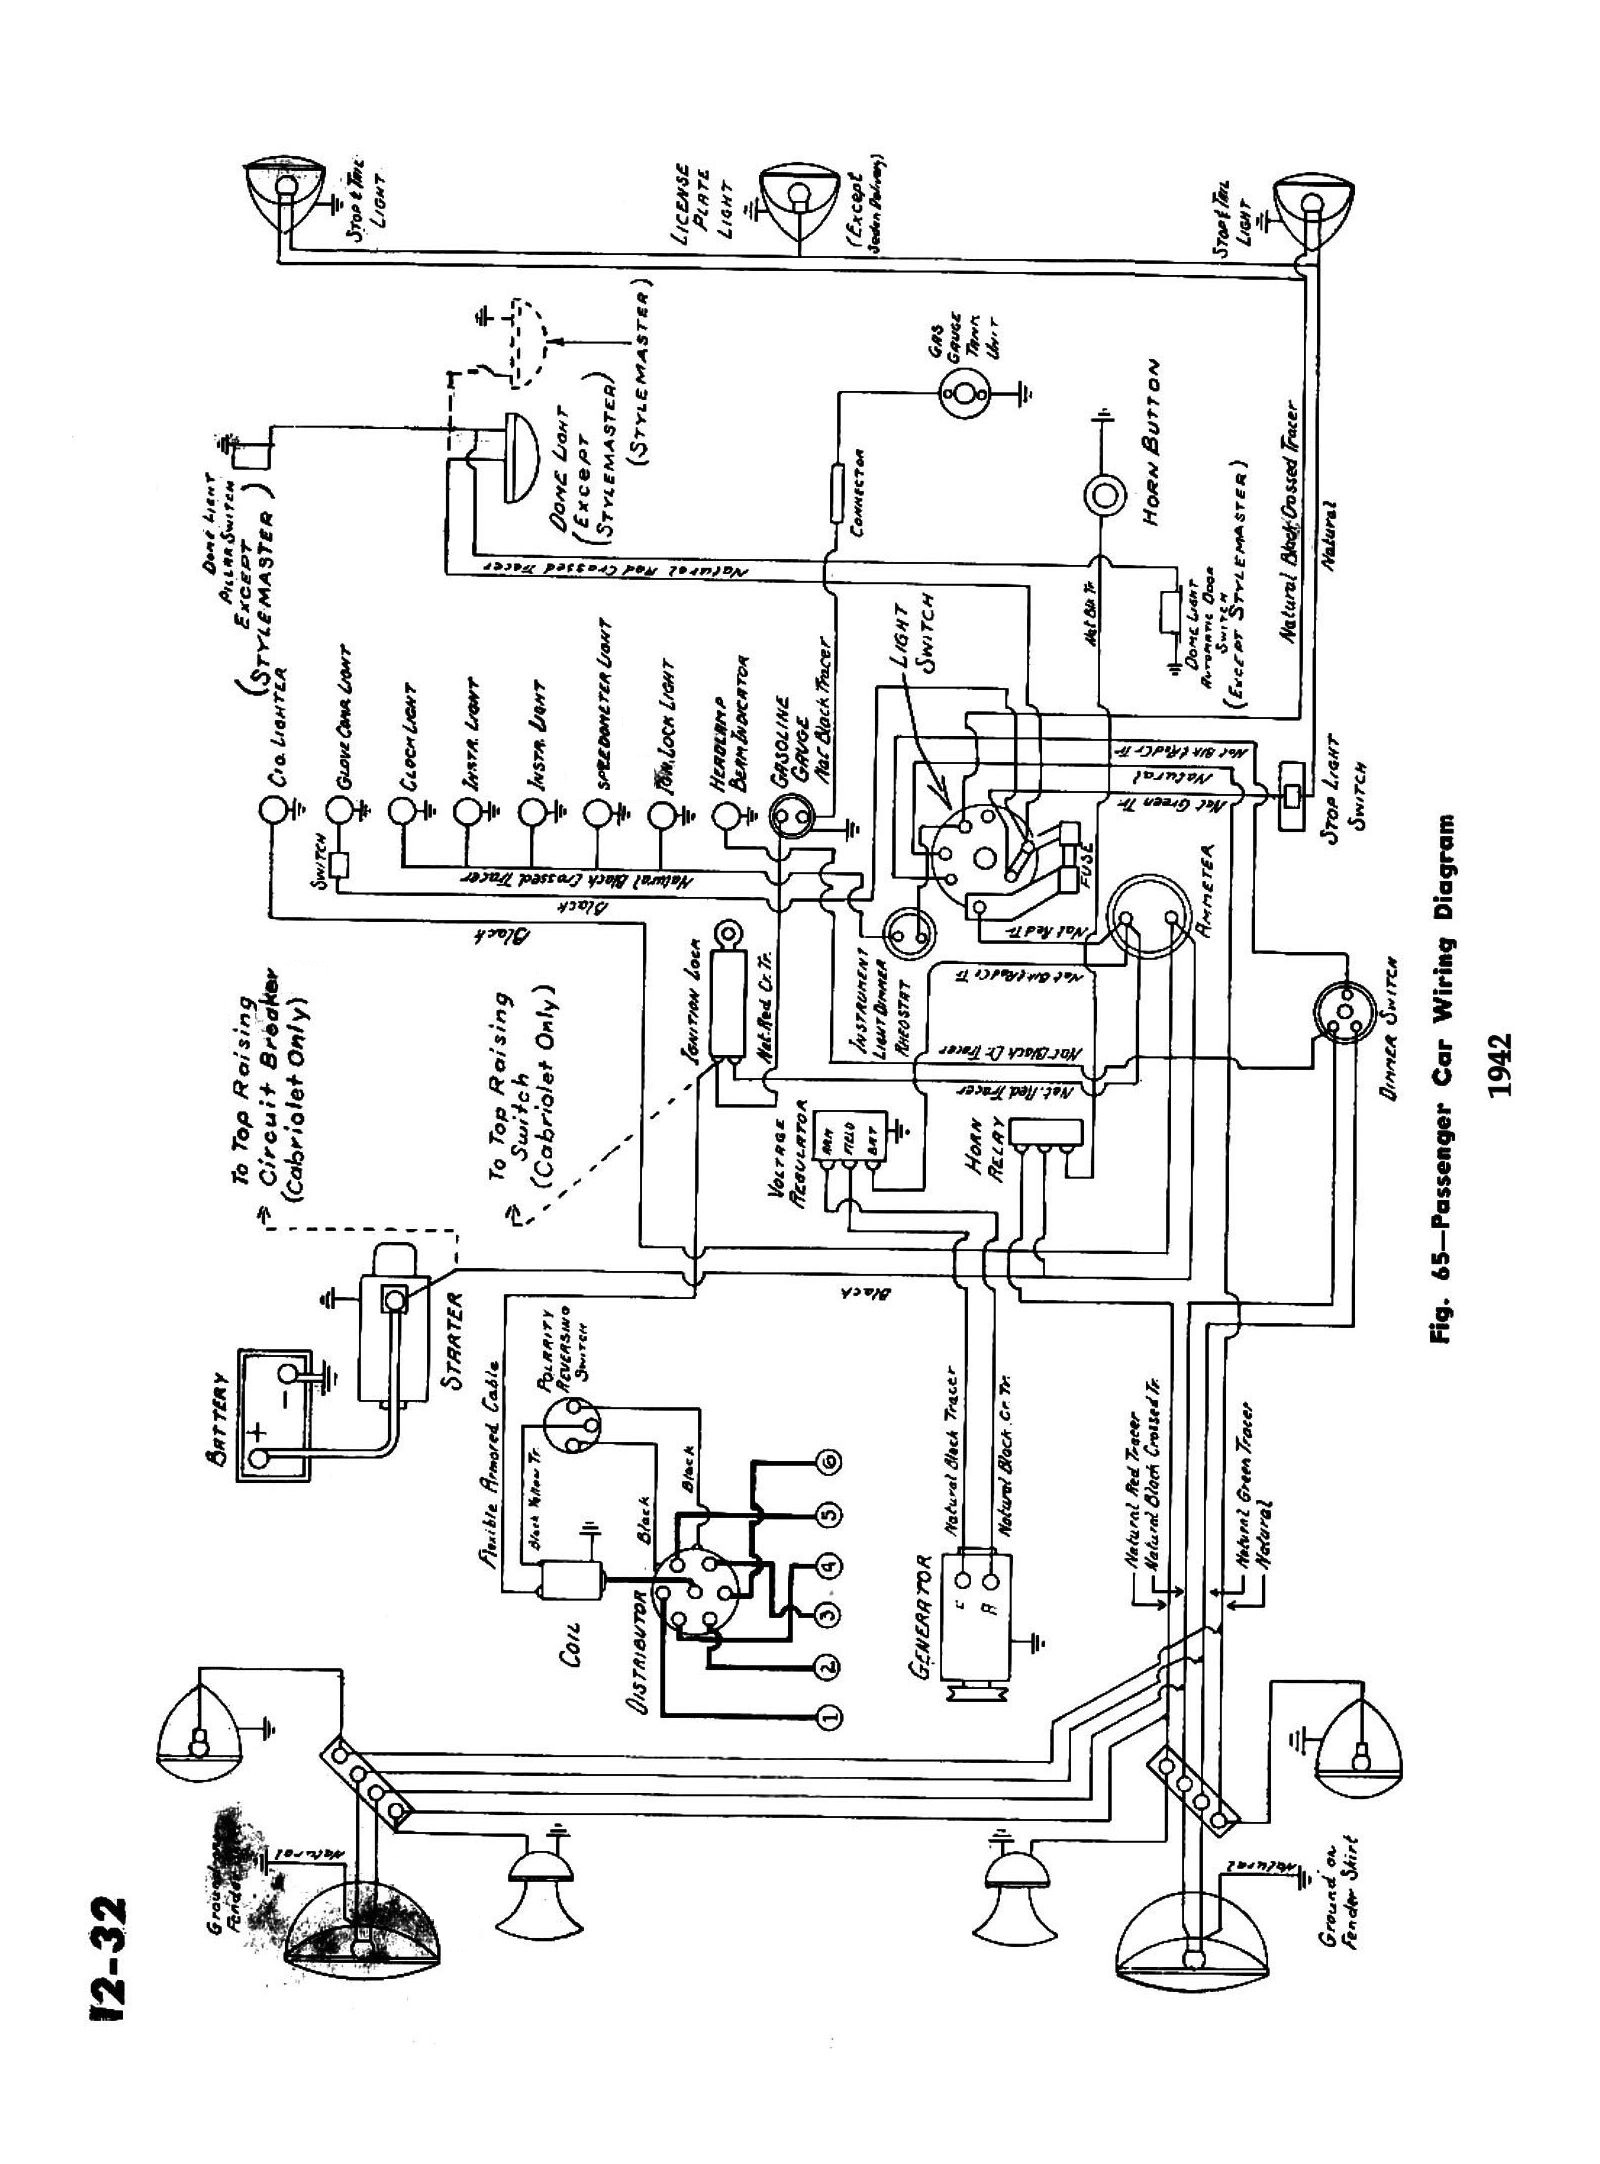 1988 Gmc Dump Truck Wiring Diagrams Library Toyota 86120 0c080 Diagram Chevy 1950 Throttle Linkage Ignition